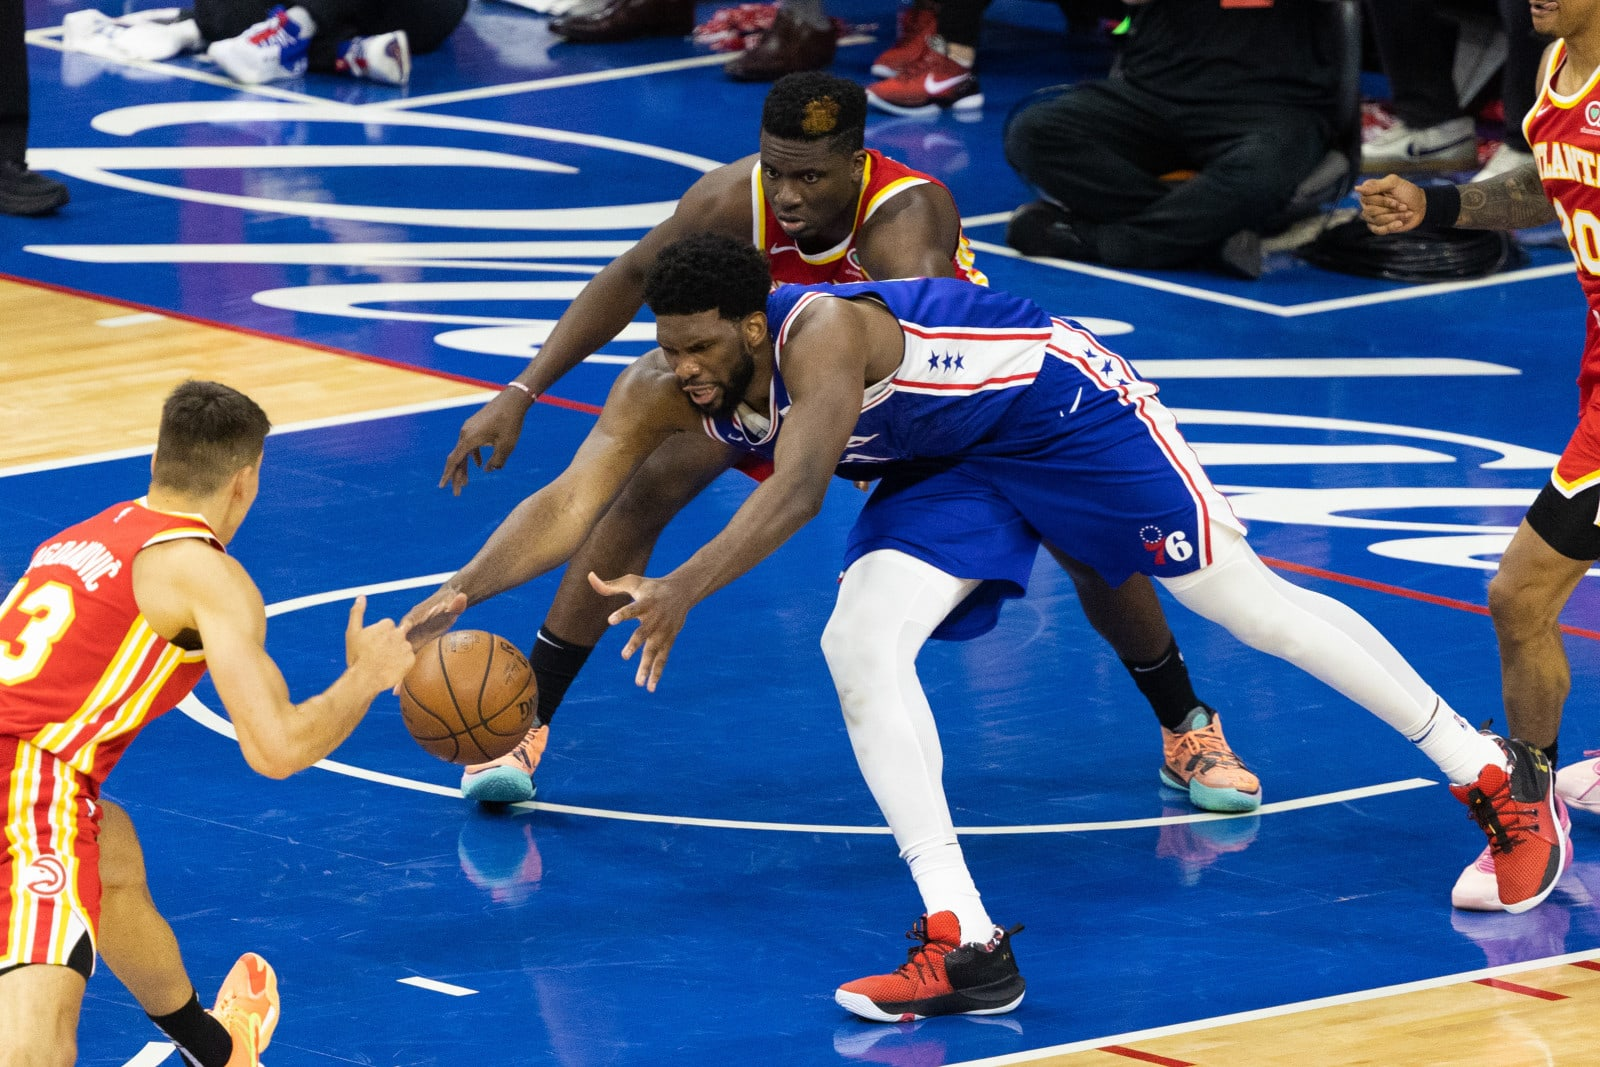 3 76ers most to blame for Game 5 collapse against Hawks